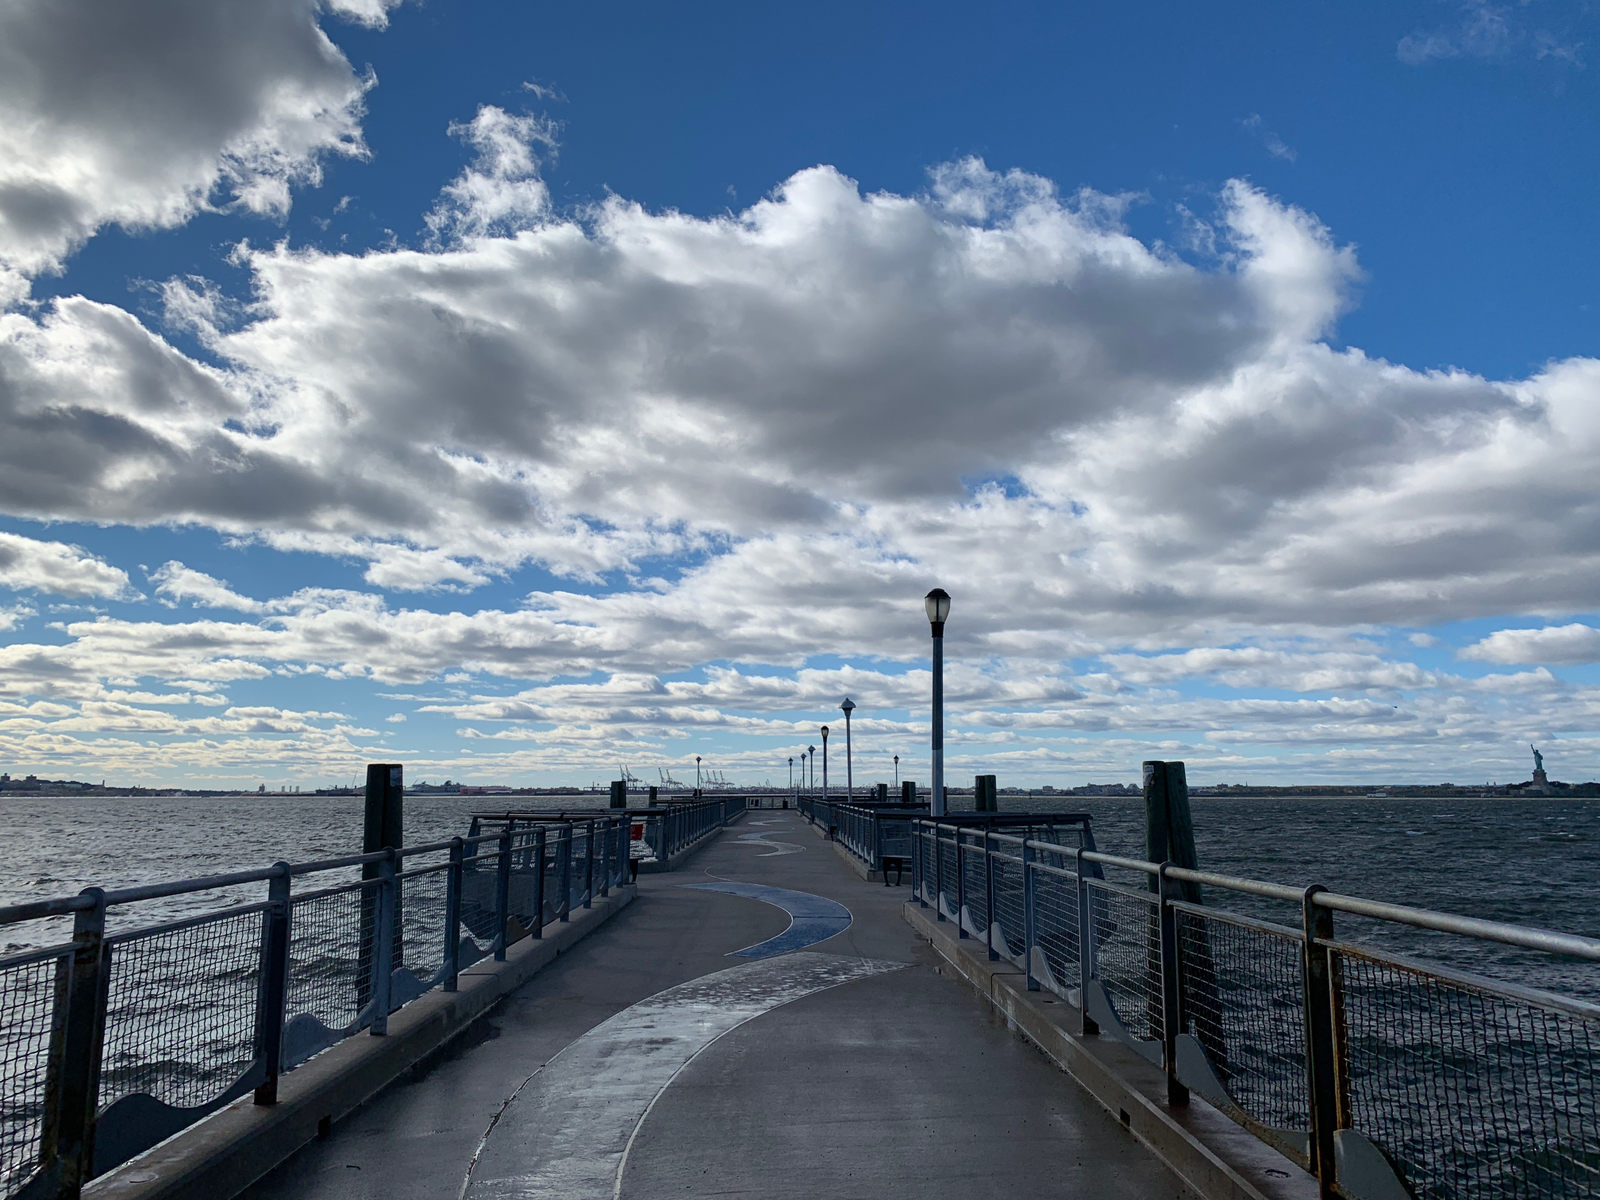 The iPhone XR. The slightly wider angle lens means you capture the Statue of Liberty off to the right. But also note just how much more detail there is in the clouds.